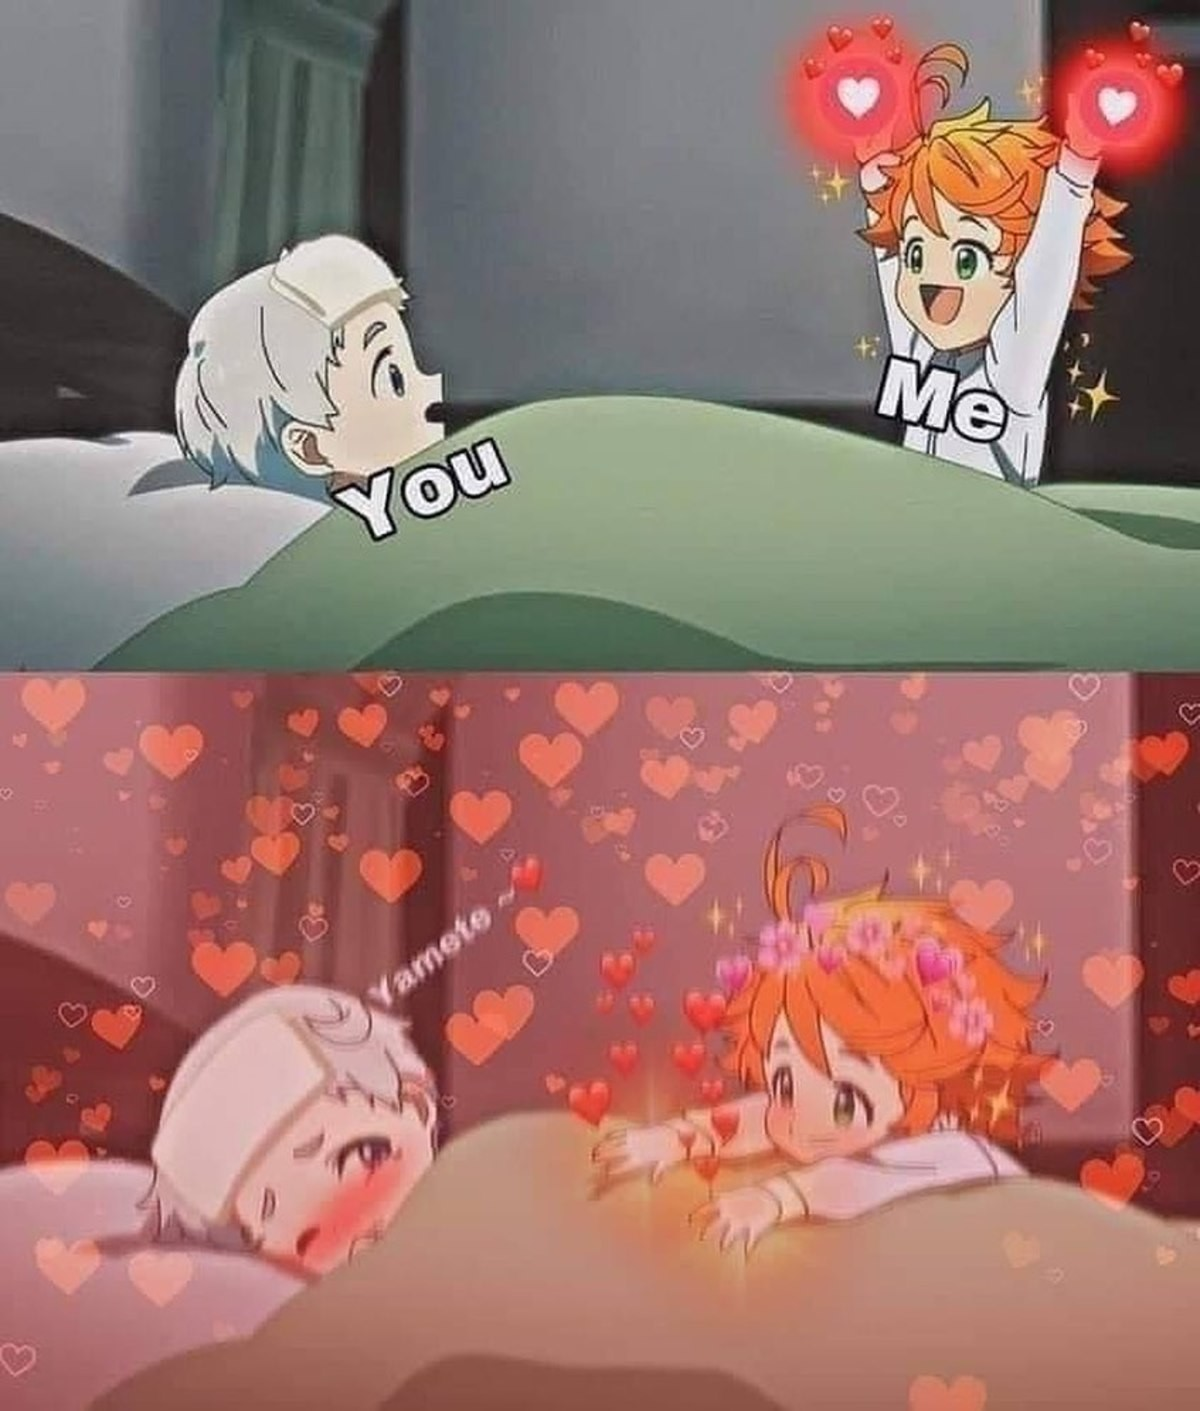 Sauce: The Promised Neverland. .. Pledge alliance to our overlord Phil or perish like a dog.